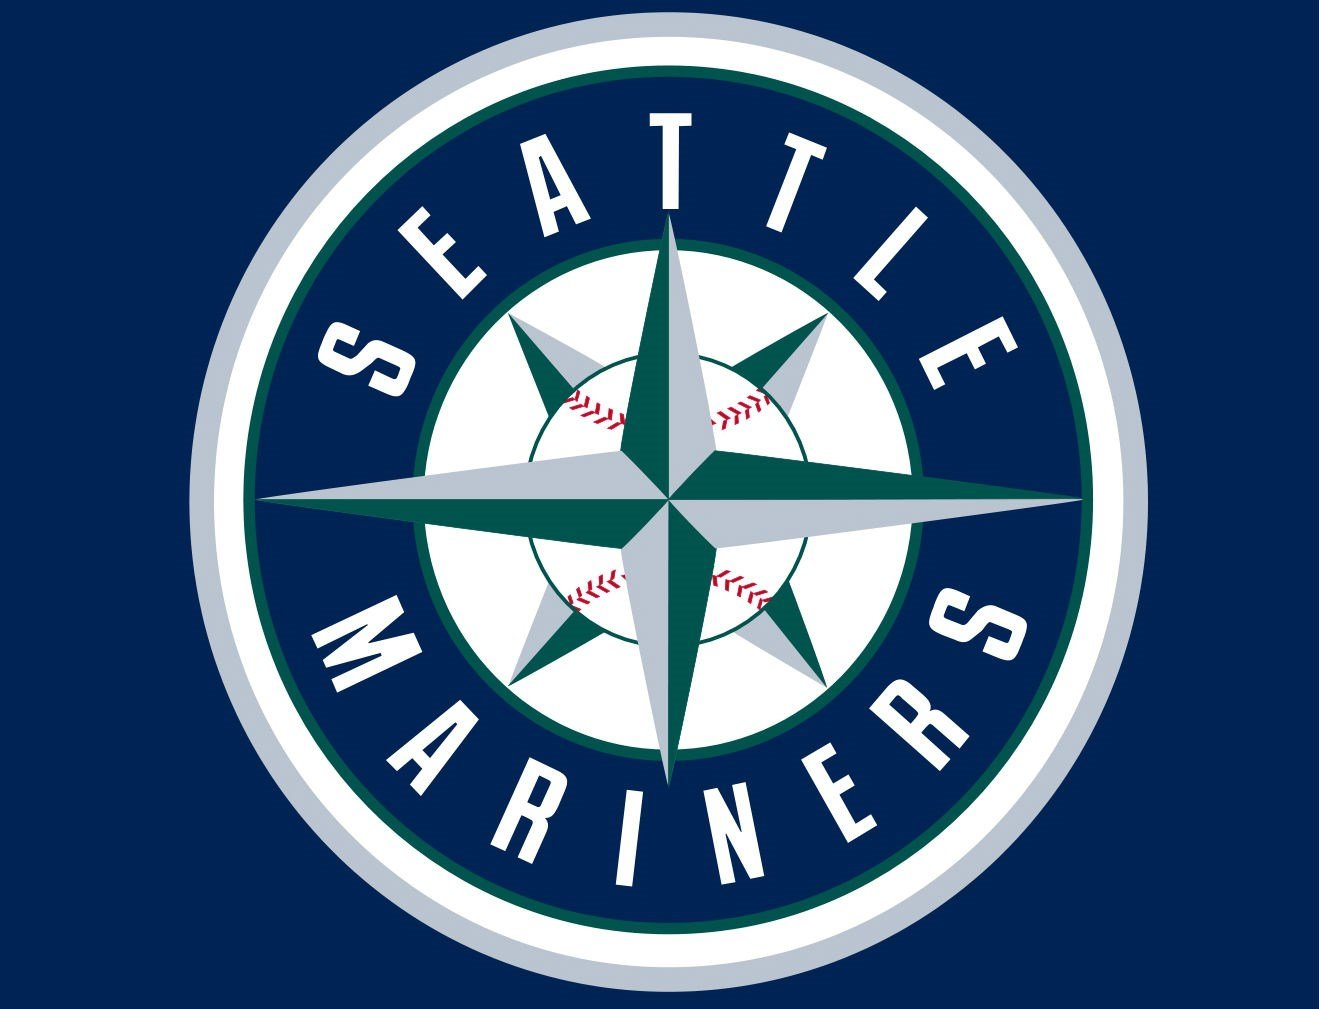 Mariners win fourth straight game, beating Tigers 7-5